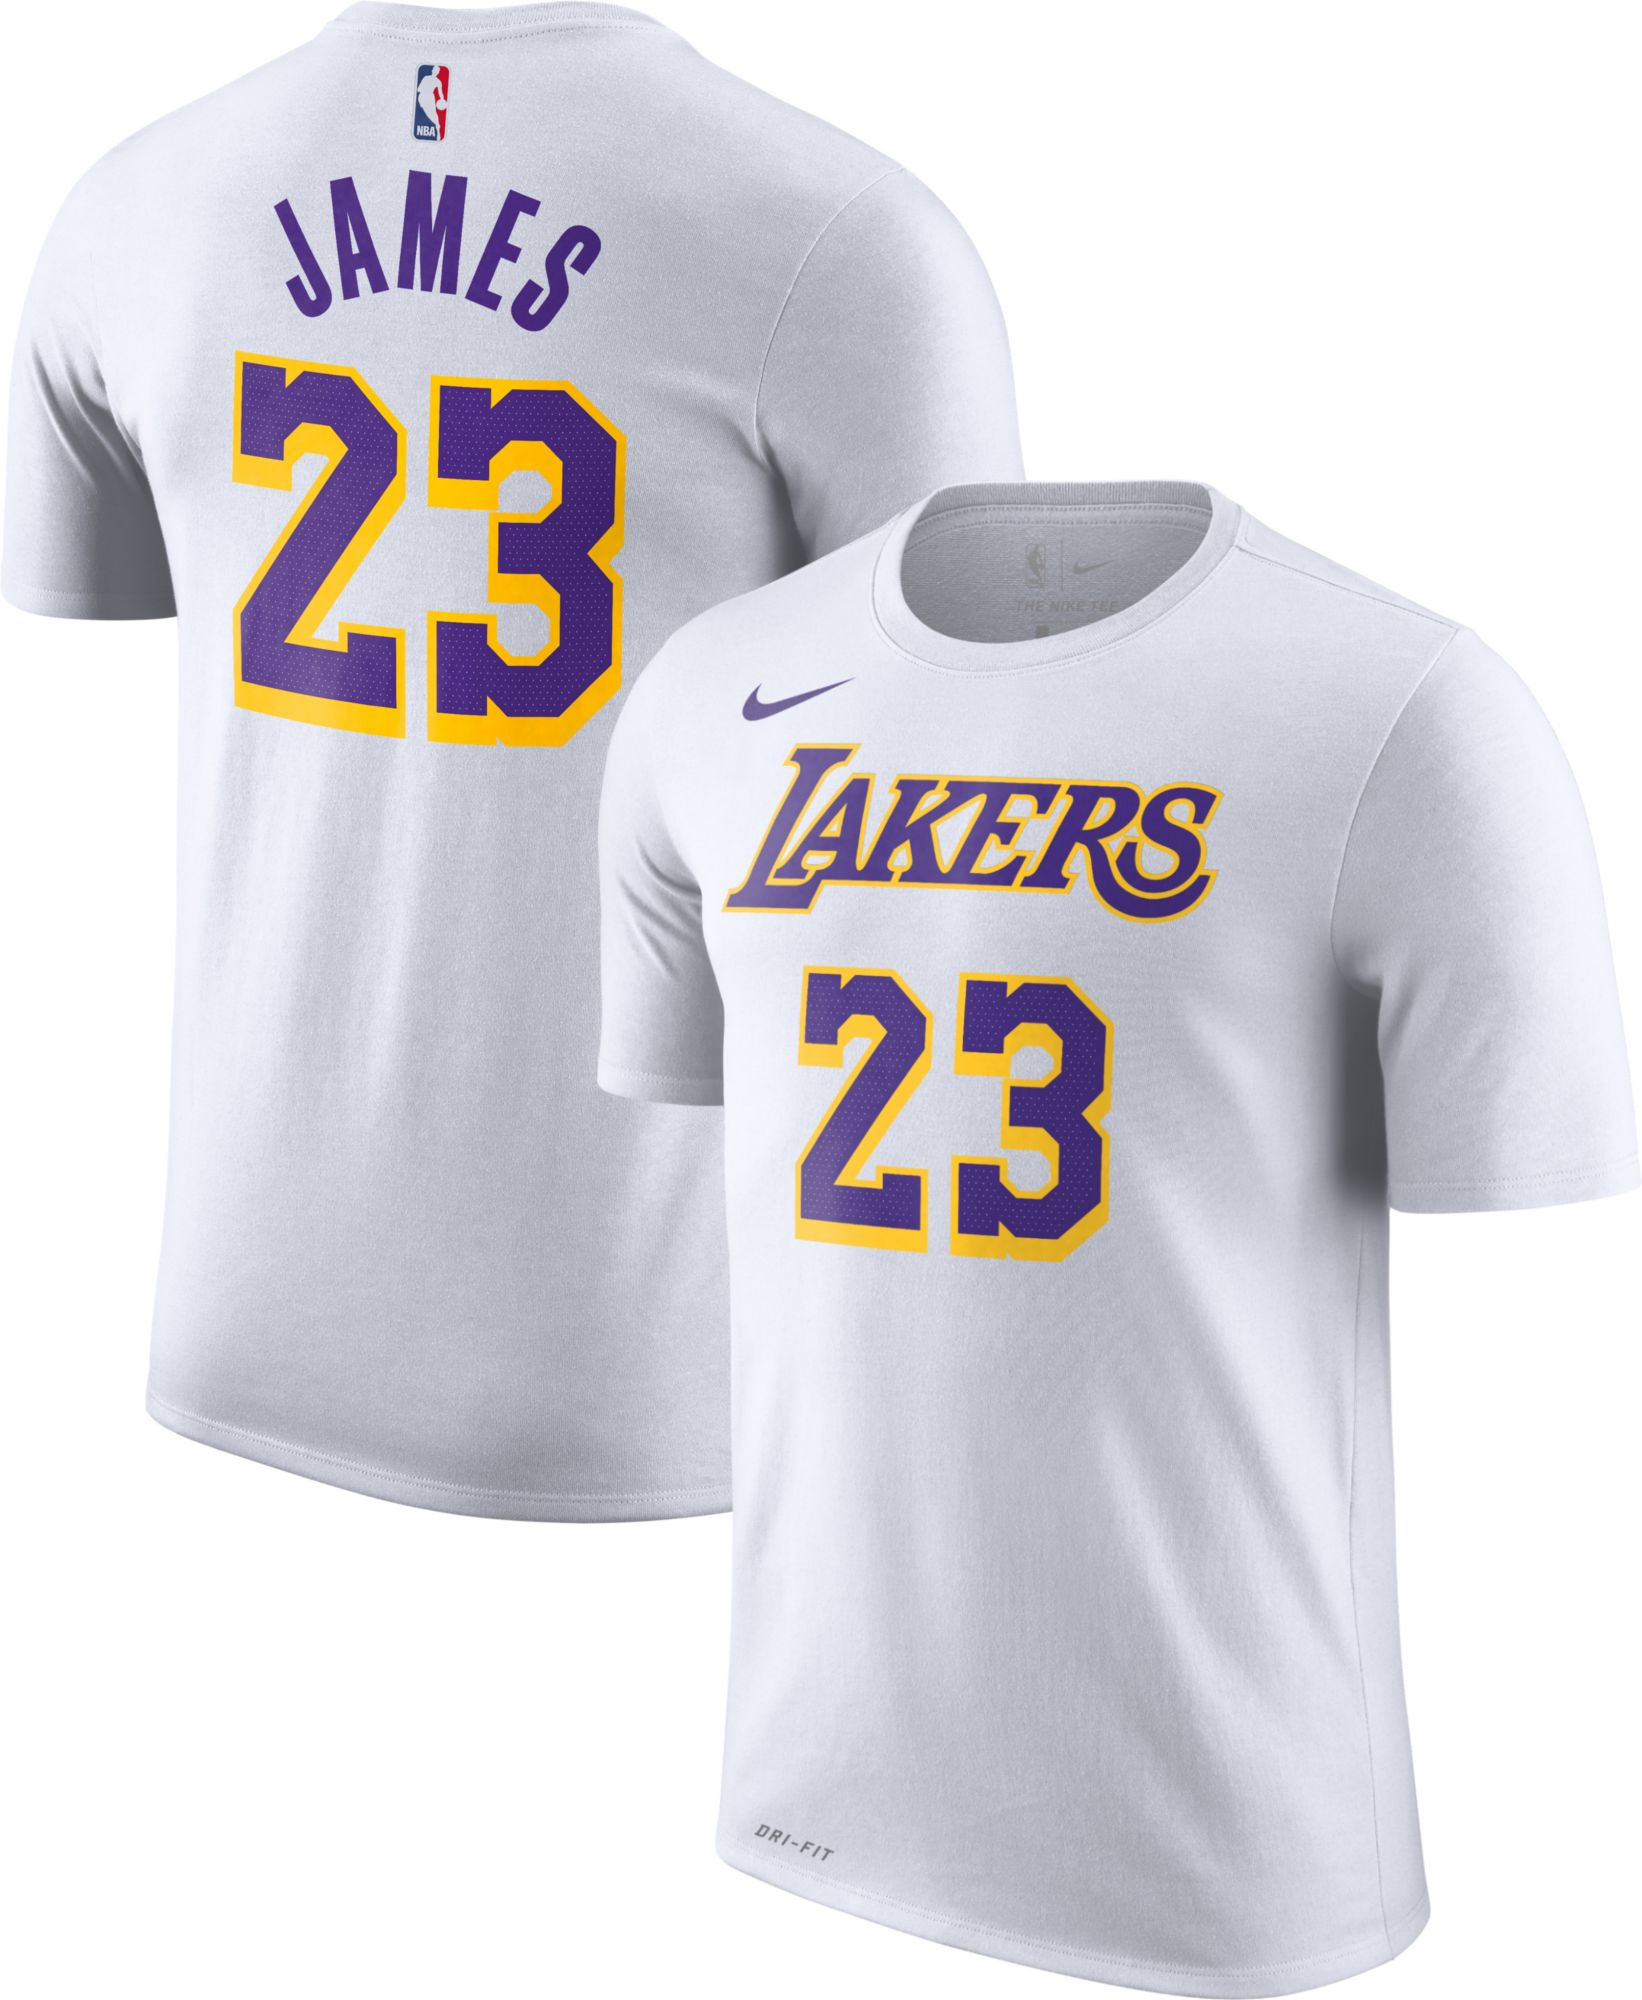 cheap for discount 0caf5 f1a27 buy-lebron-james-jersey